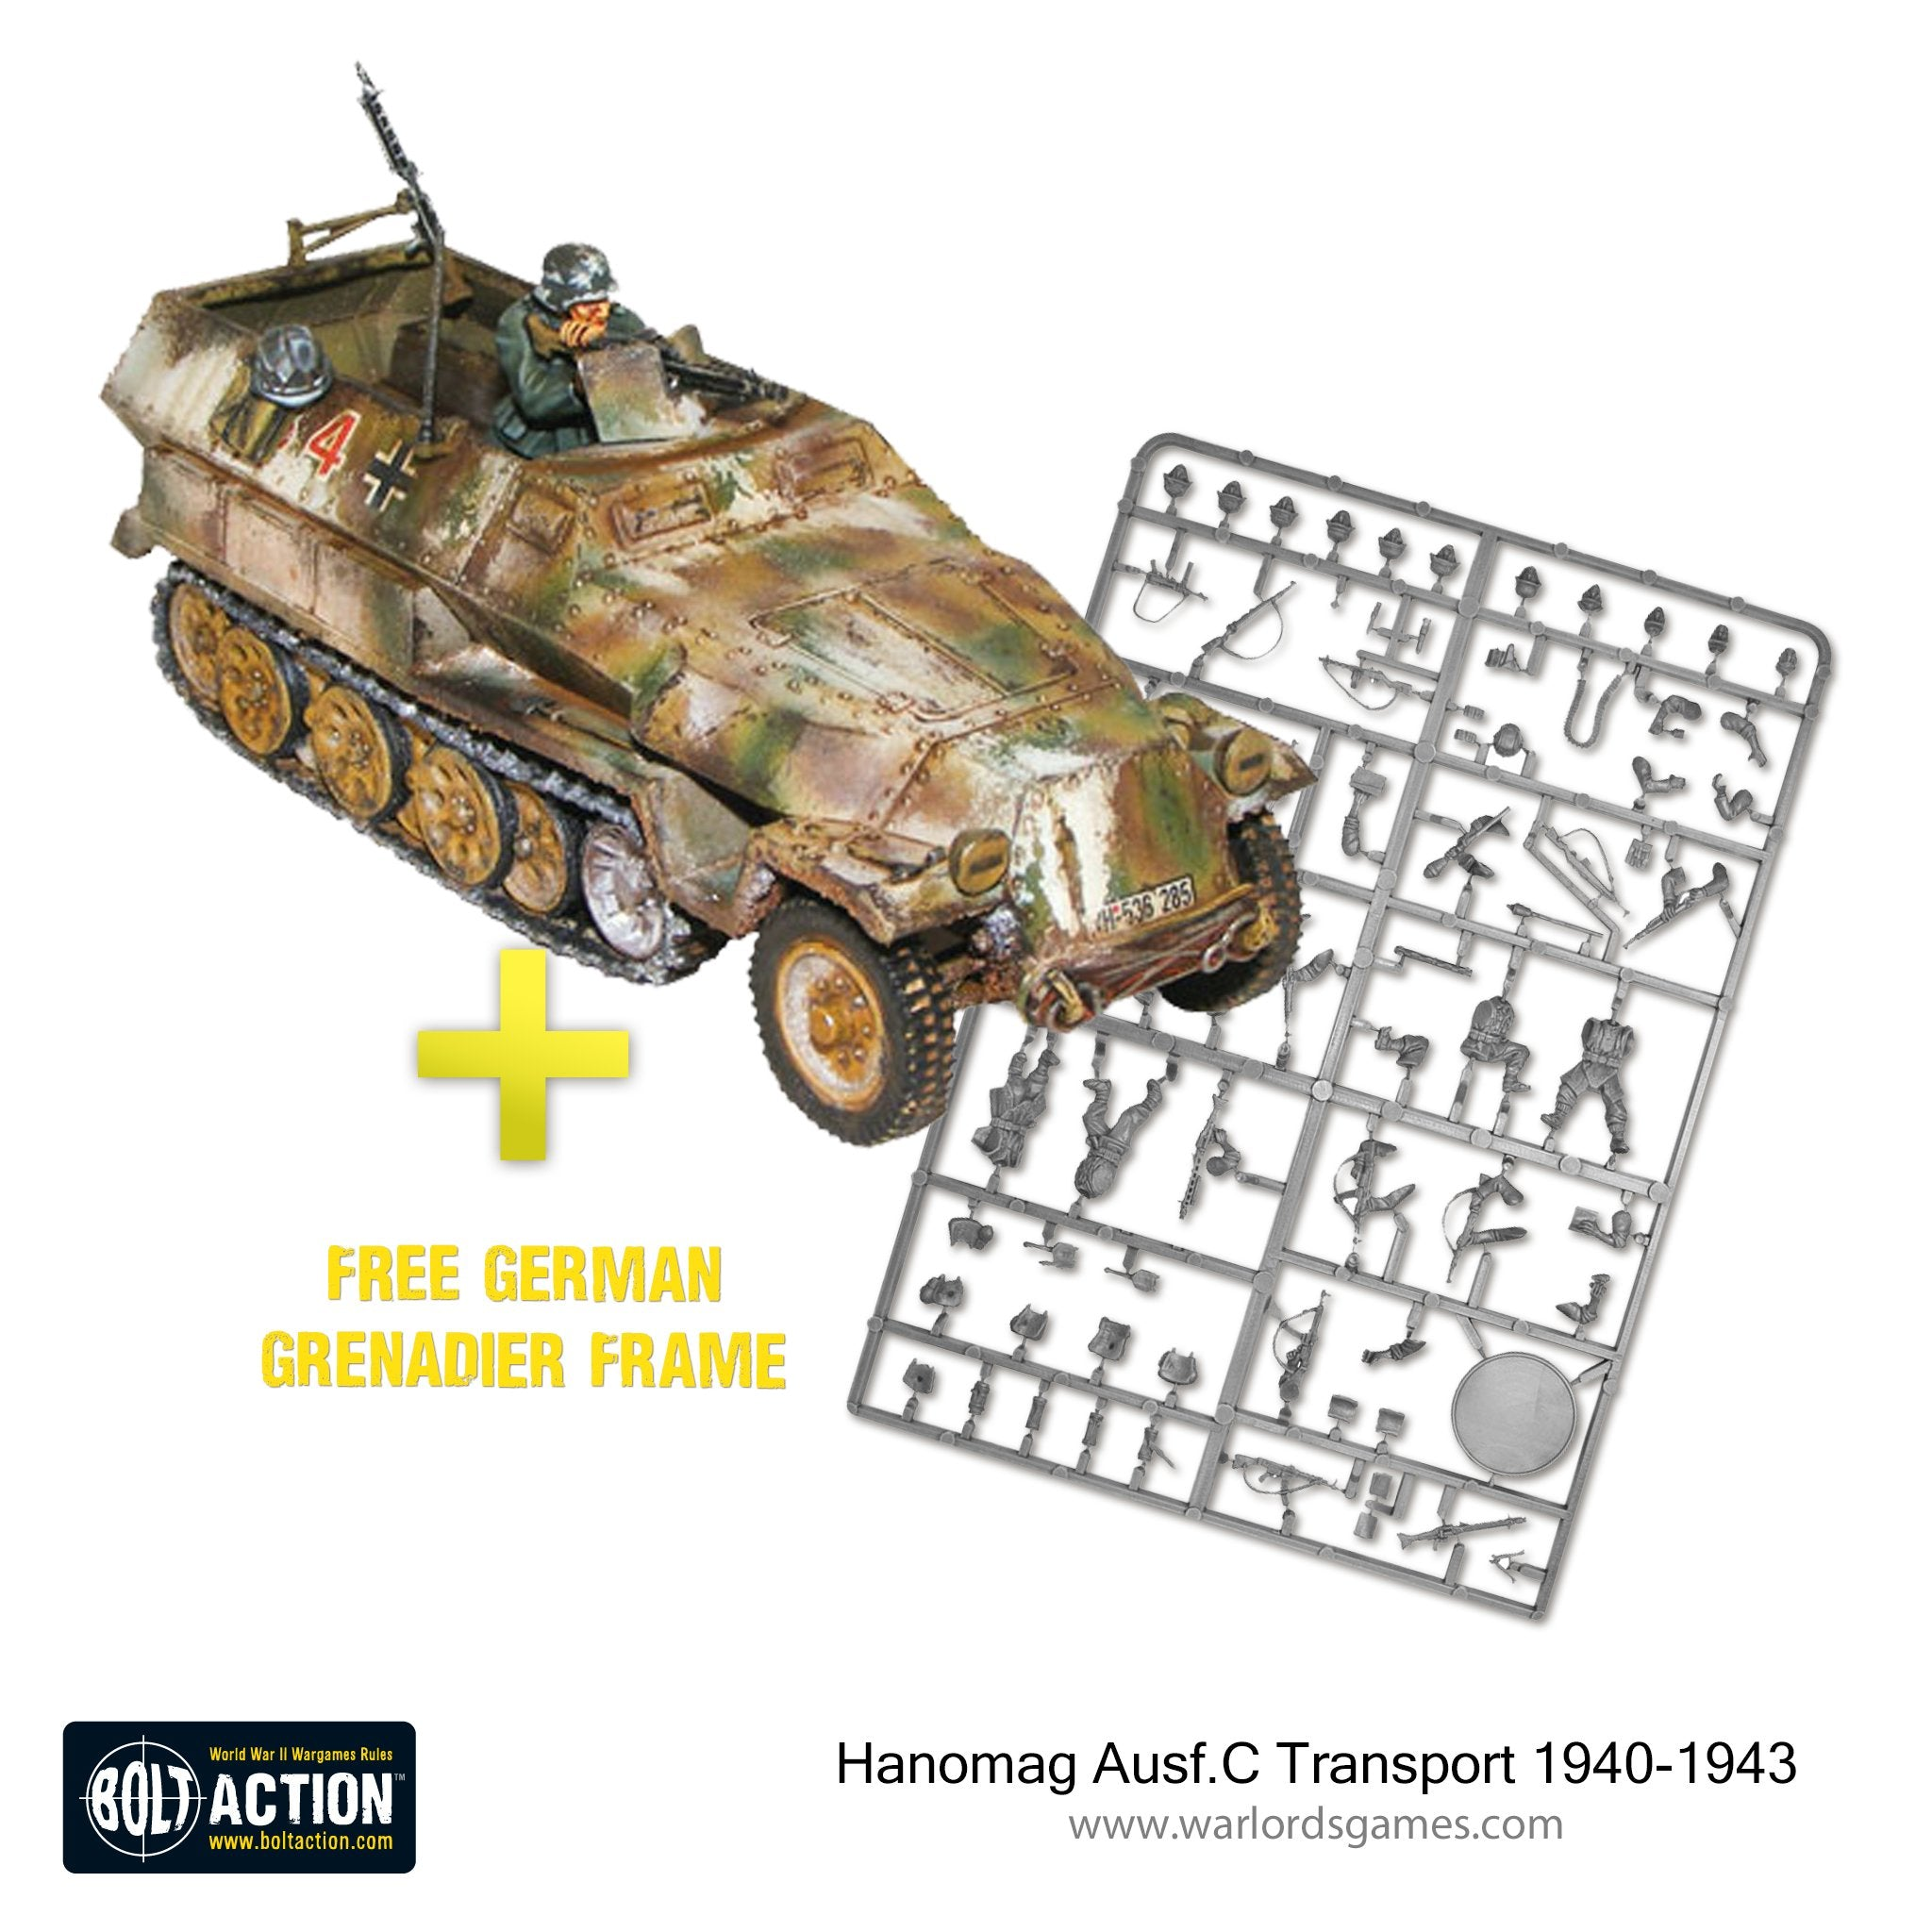 Hanomag Ausf.C Transport 1940-1943